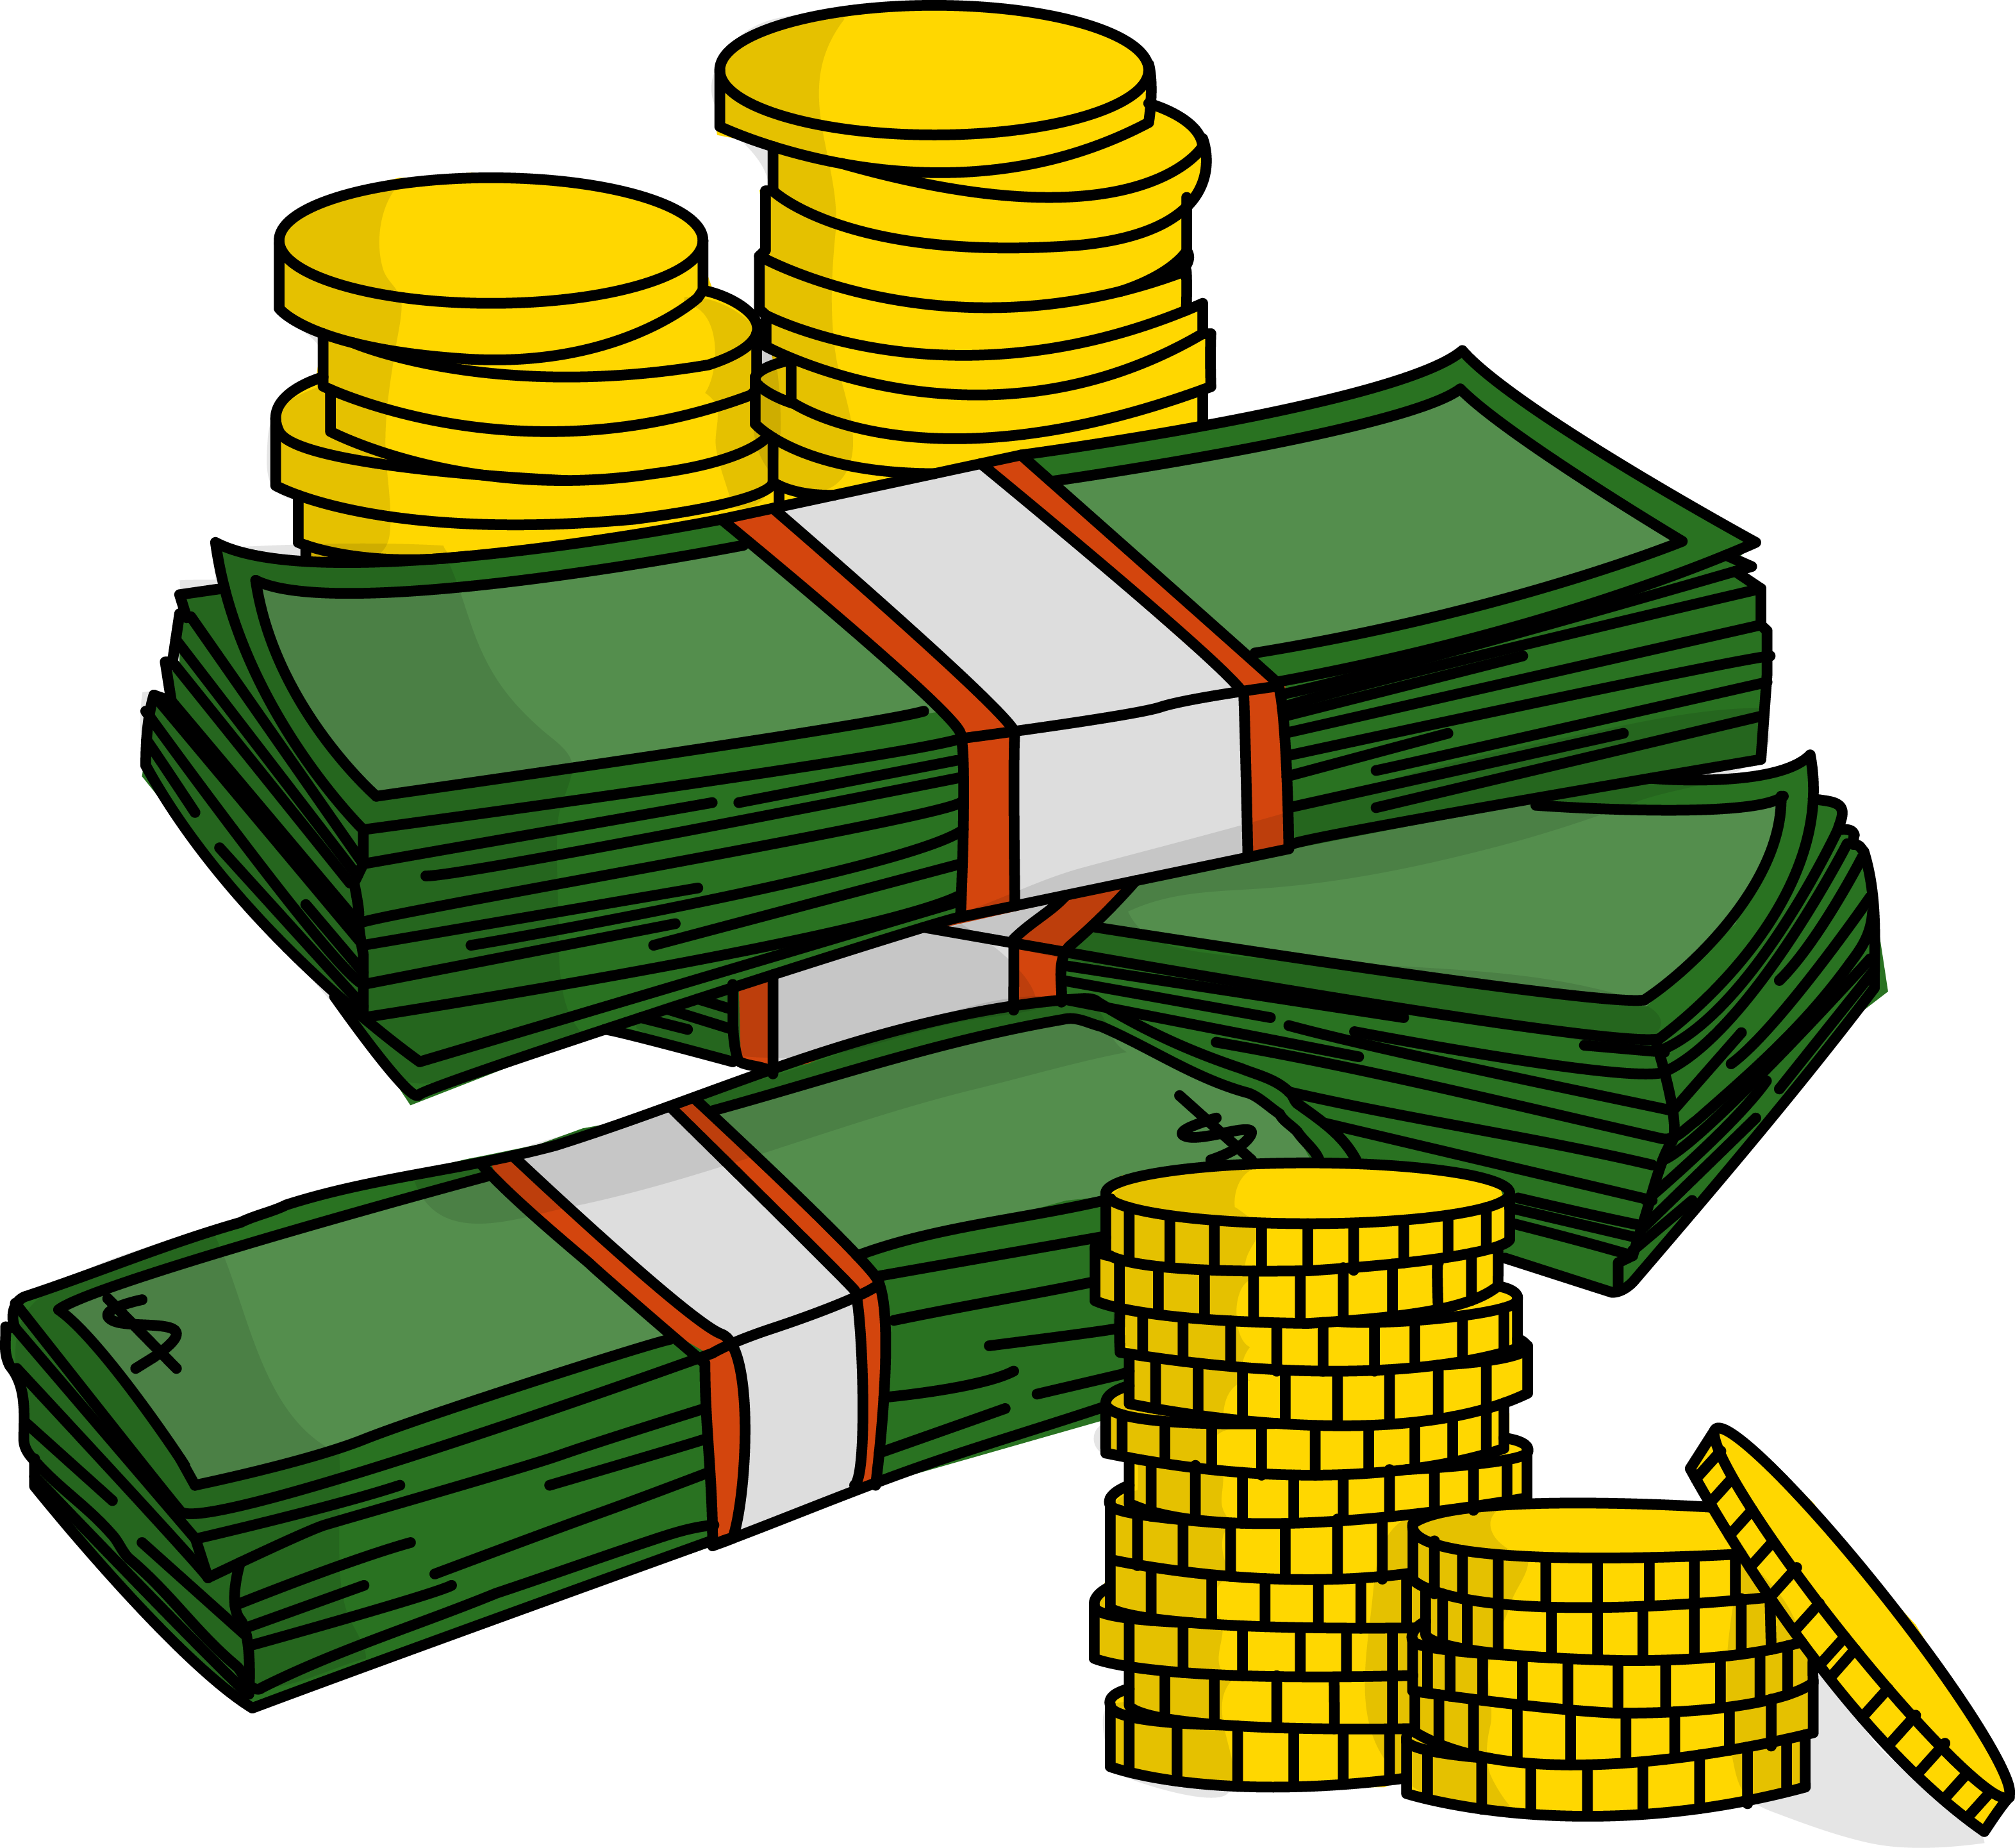 picture download Free clip art pictures. A lot of money clipart.